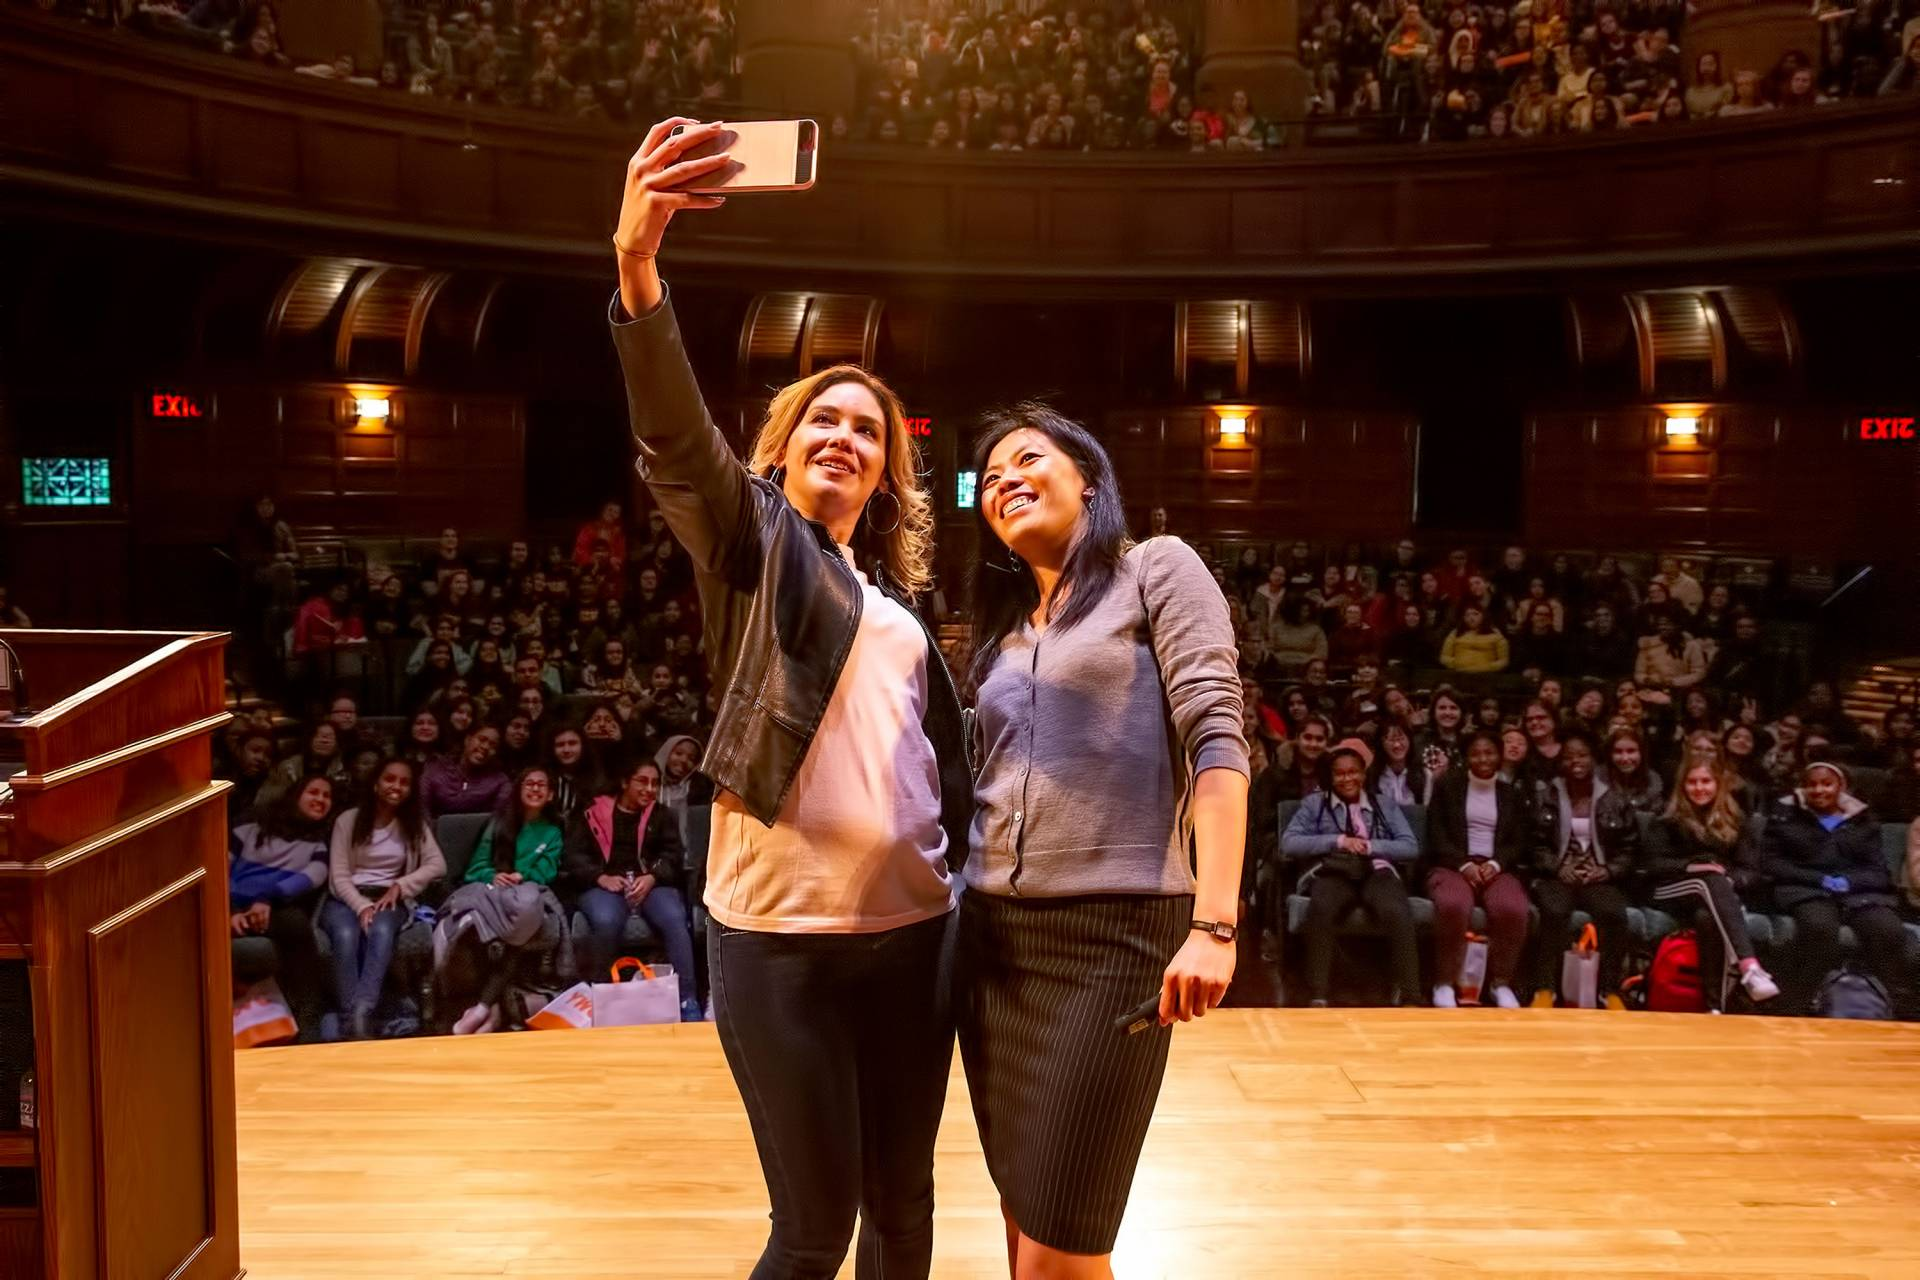 Deedee Ortiz taking a selfie on stage with Tammy Ma